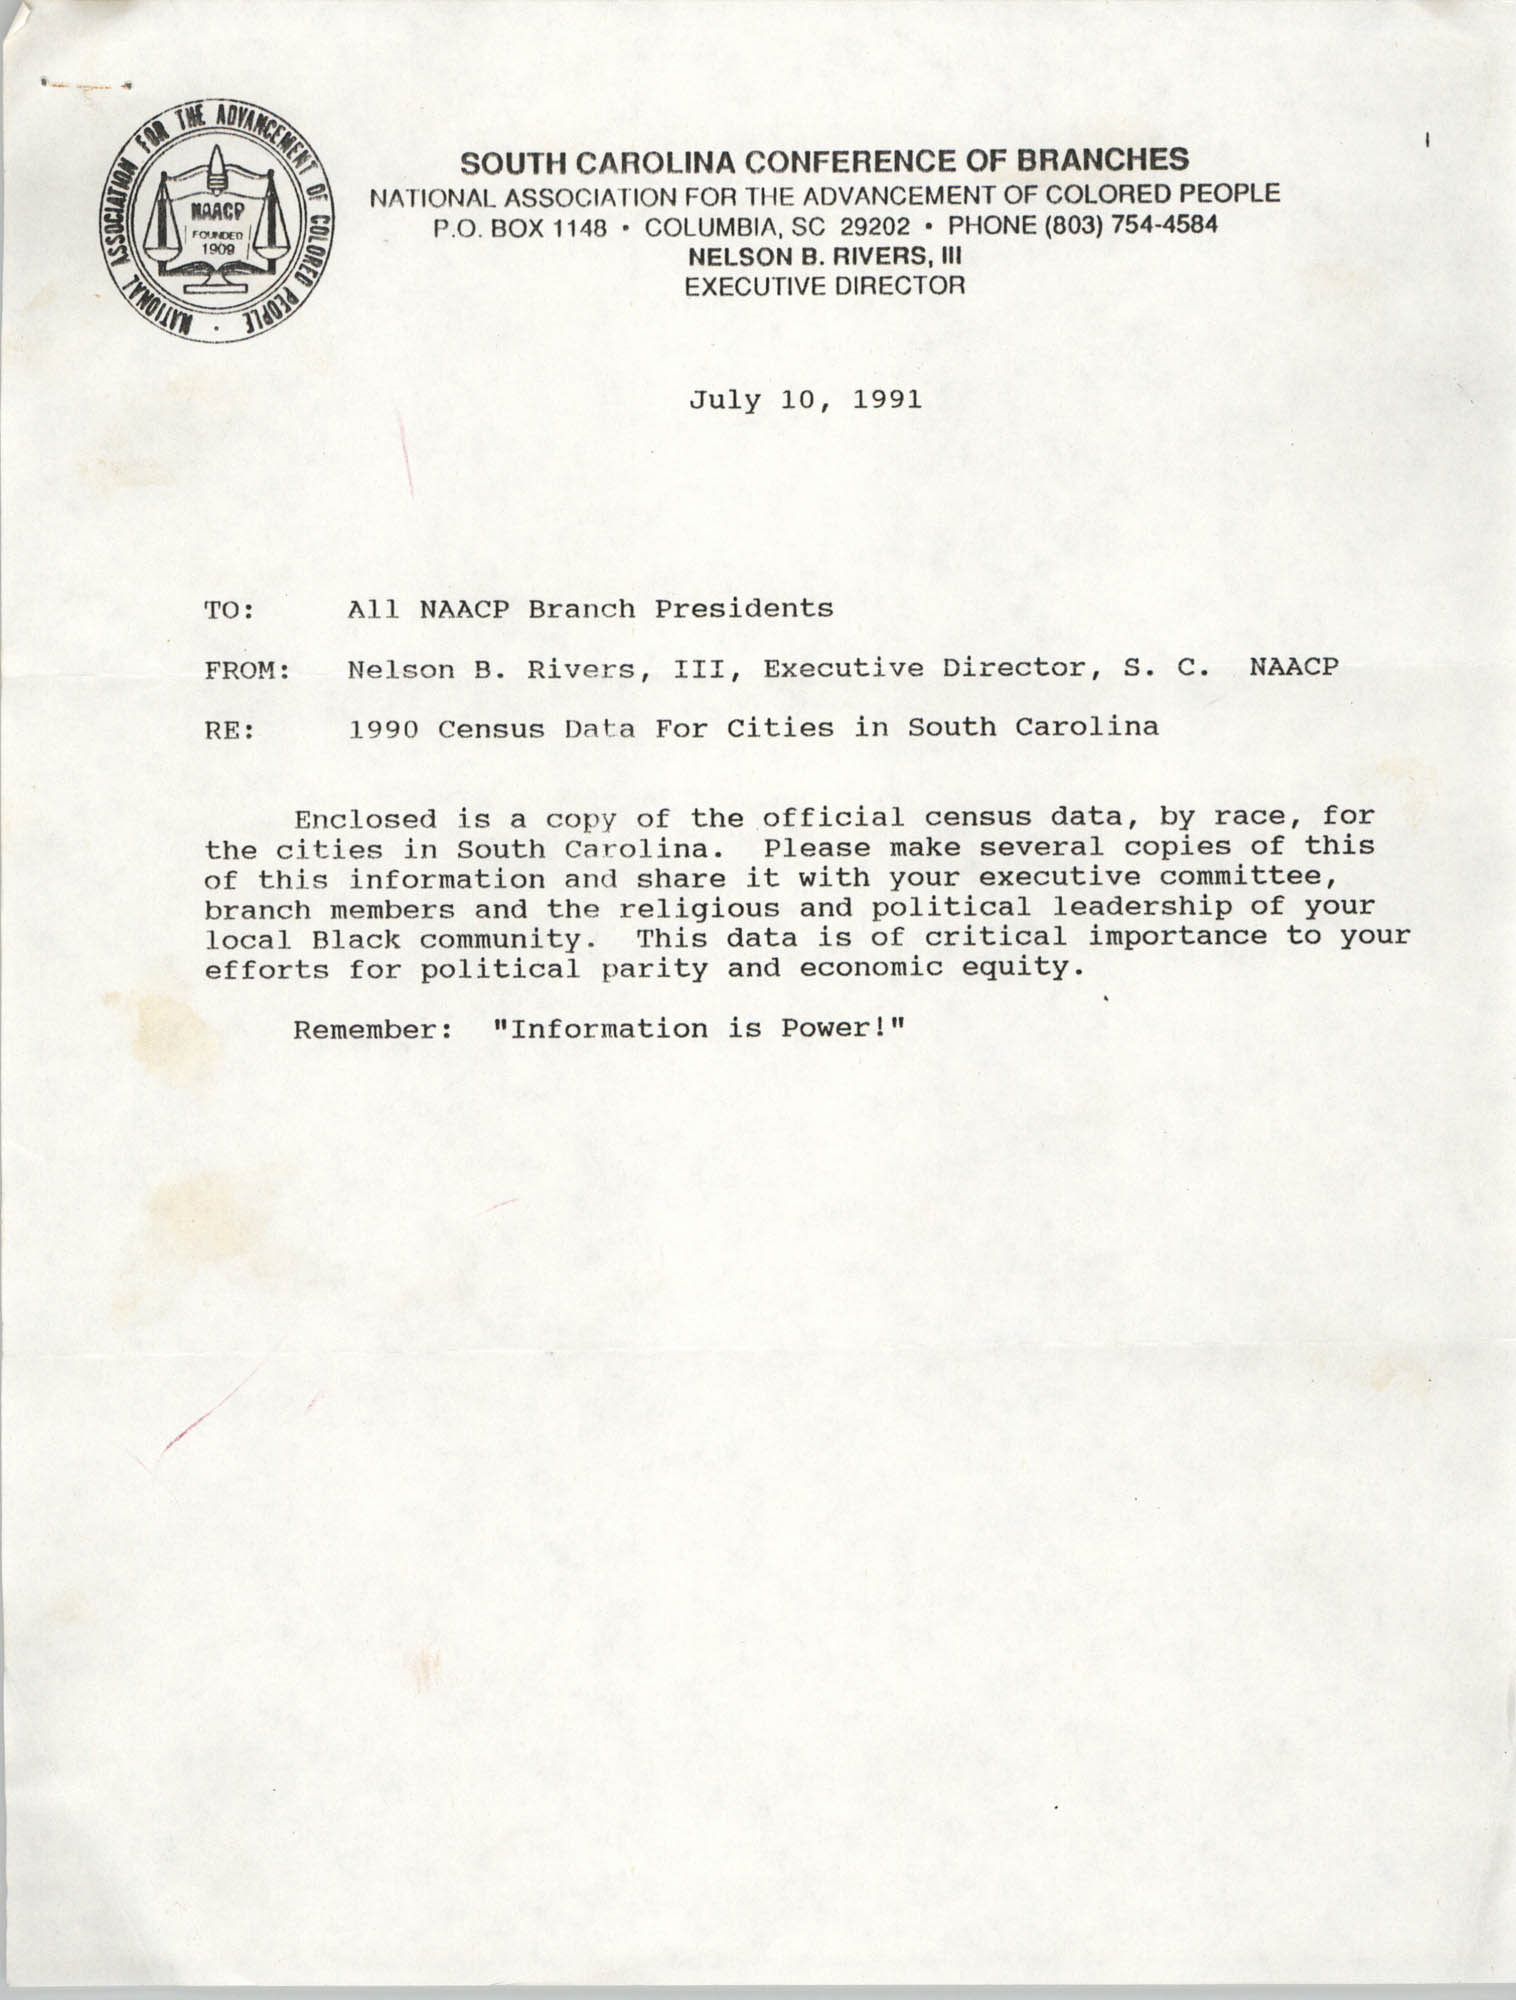 South Carolina Branch of the NAACP Memorandum, July 10, 1991